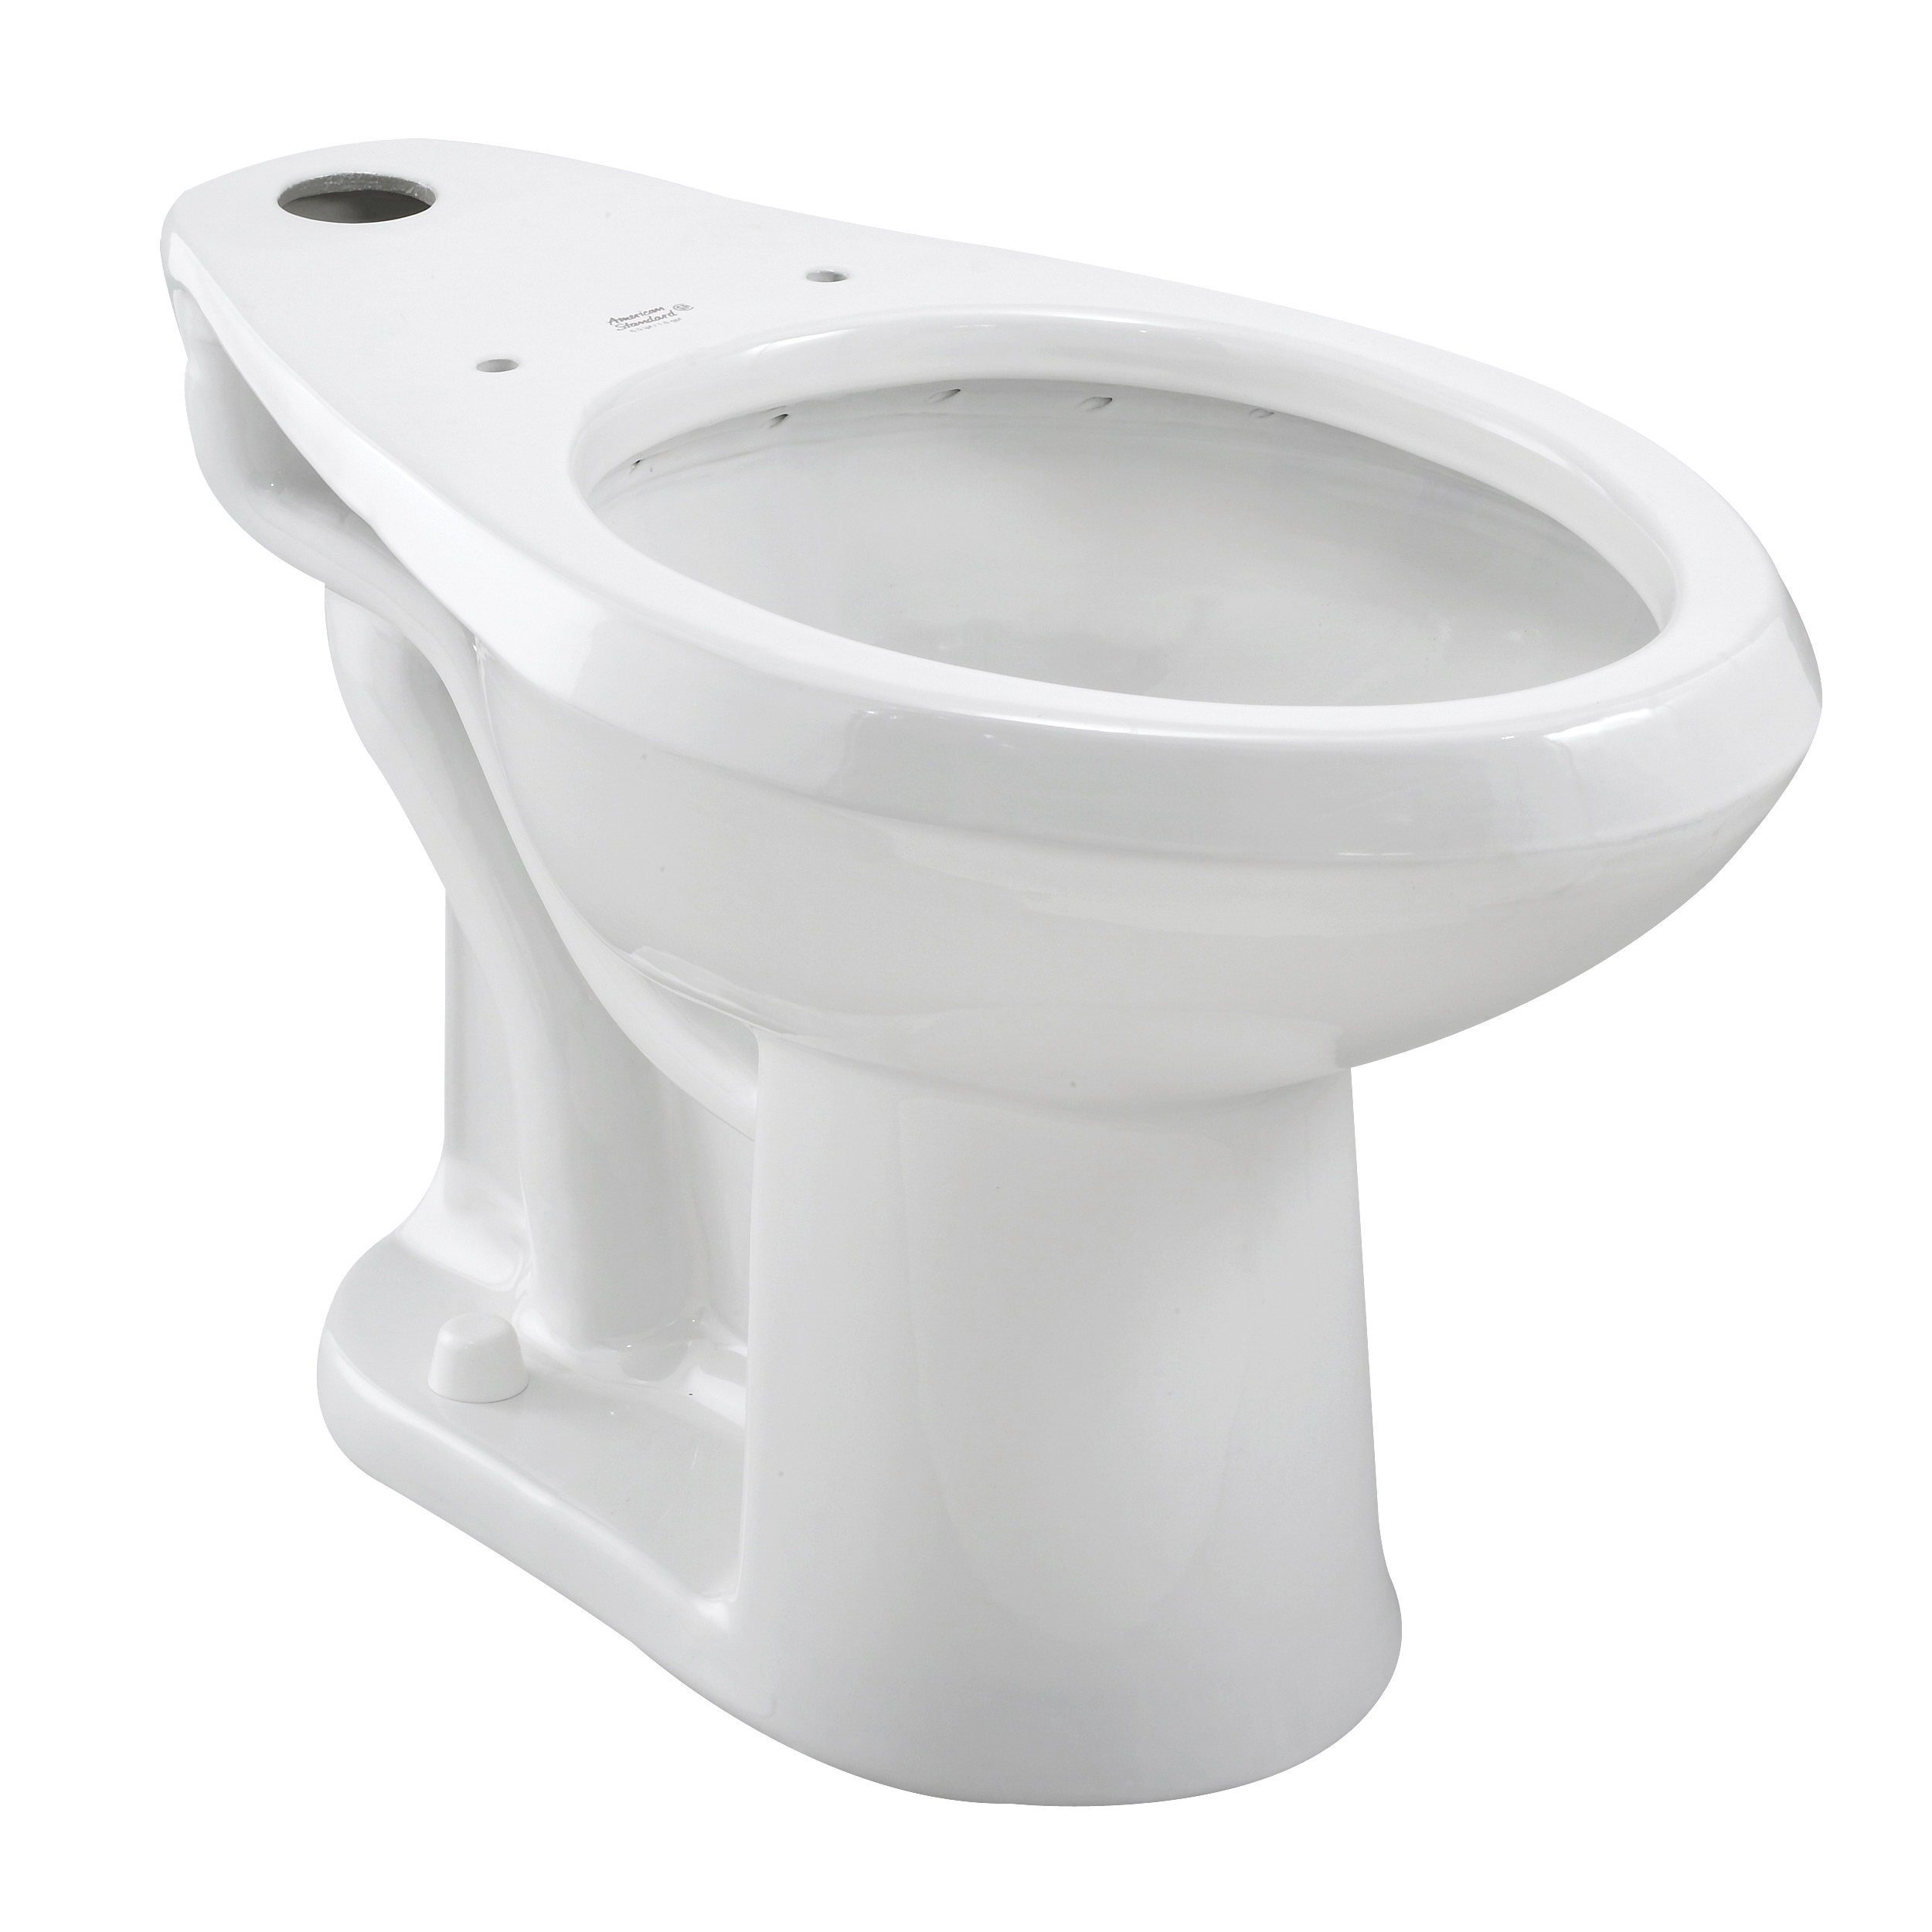 Picture of American Standard Madera 3043.001.020 Toilet Bowl, Elongated, 1.28 gpf Flush, Vitreous China, White, Floor Mounting